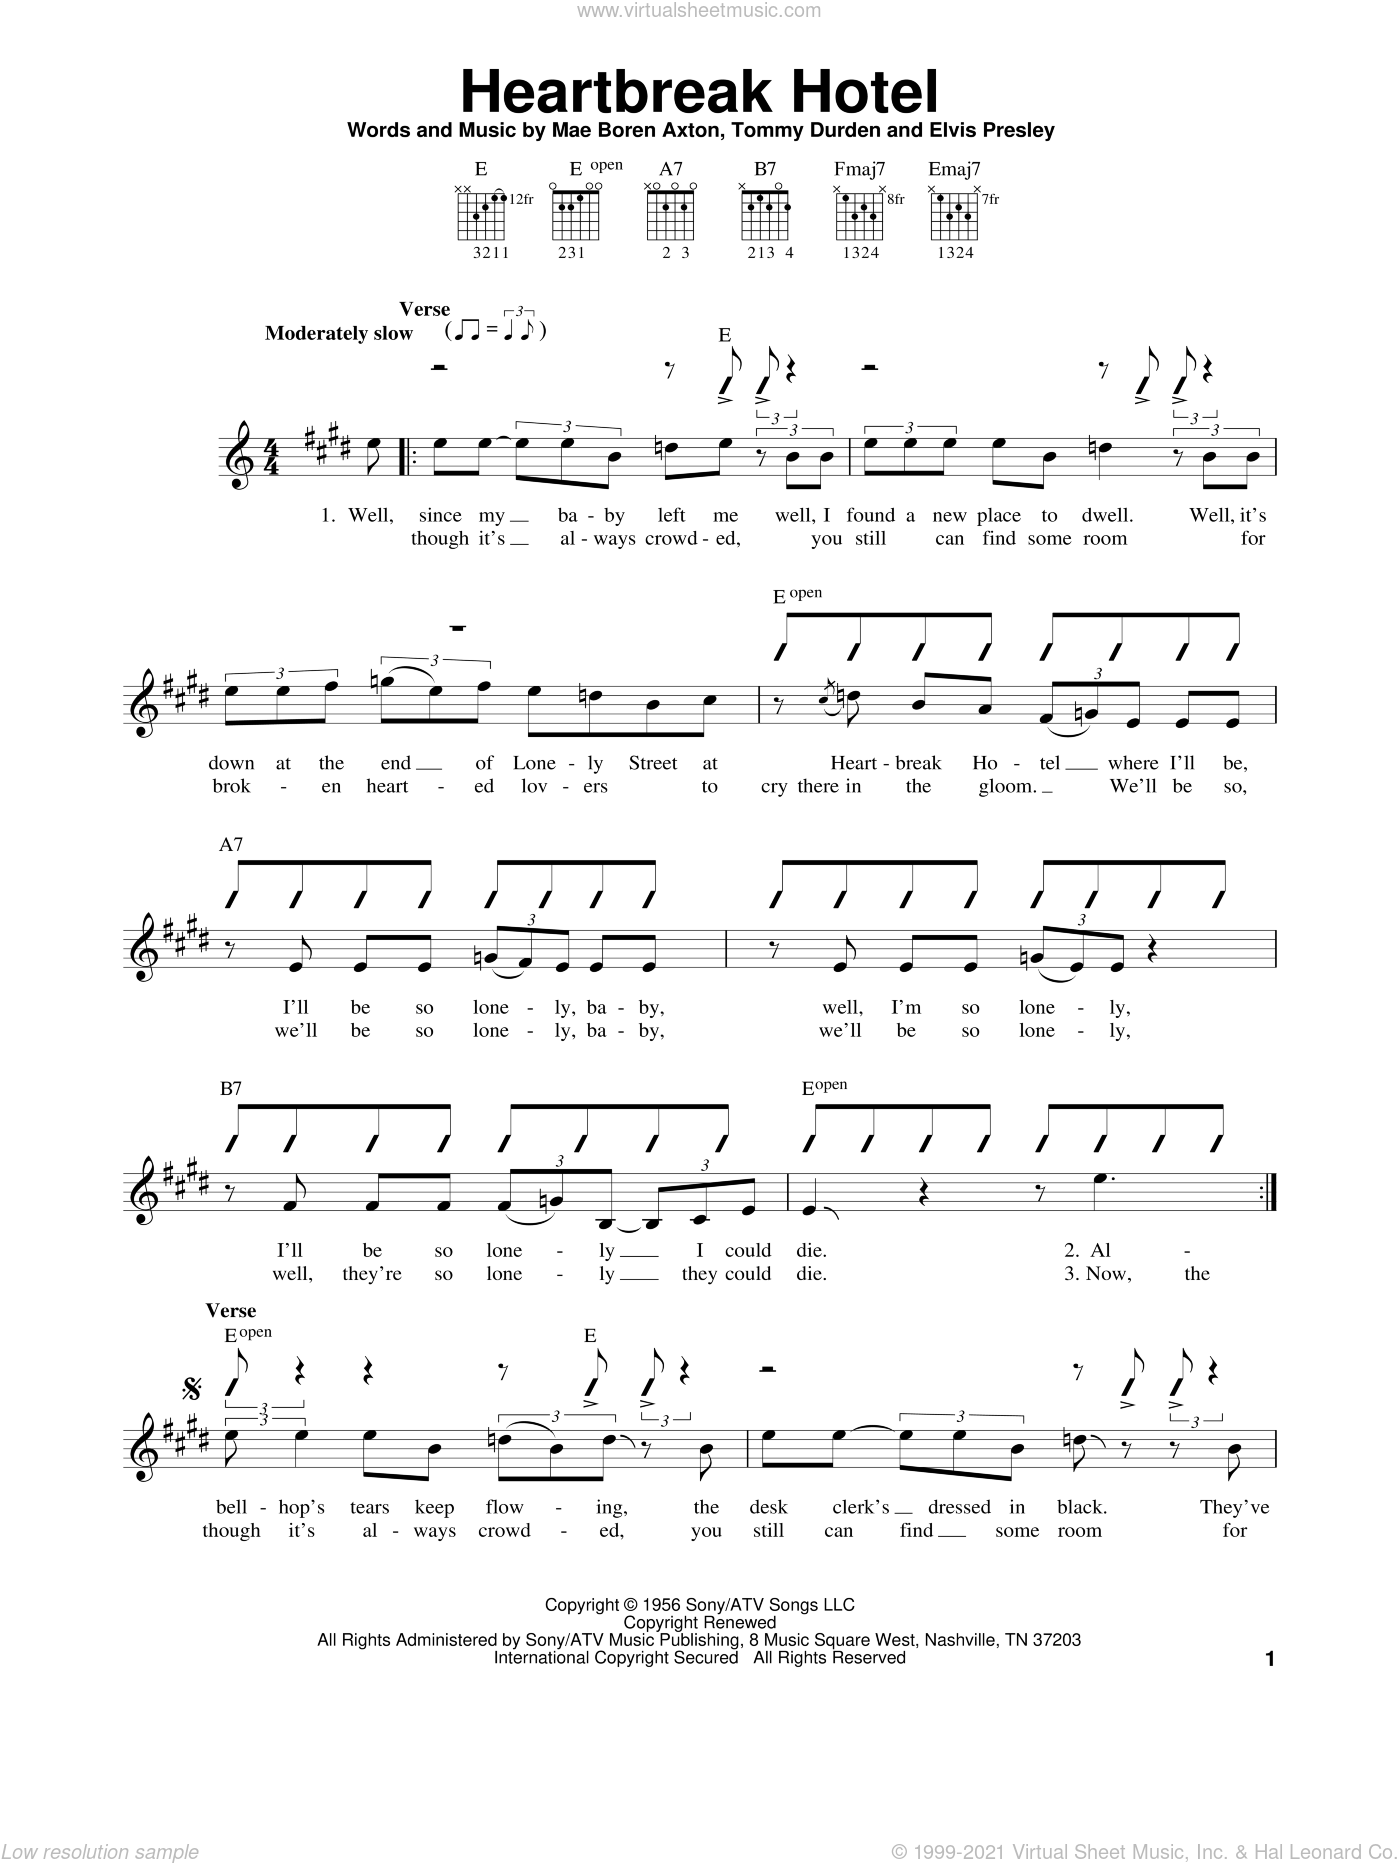 Heartbreak Hotel sheet music for guitar solo (chords) by Elvis Presley, Mae Boren Axton and Tommy Durden, easy guitar (chords)